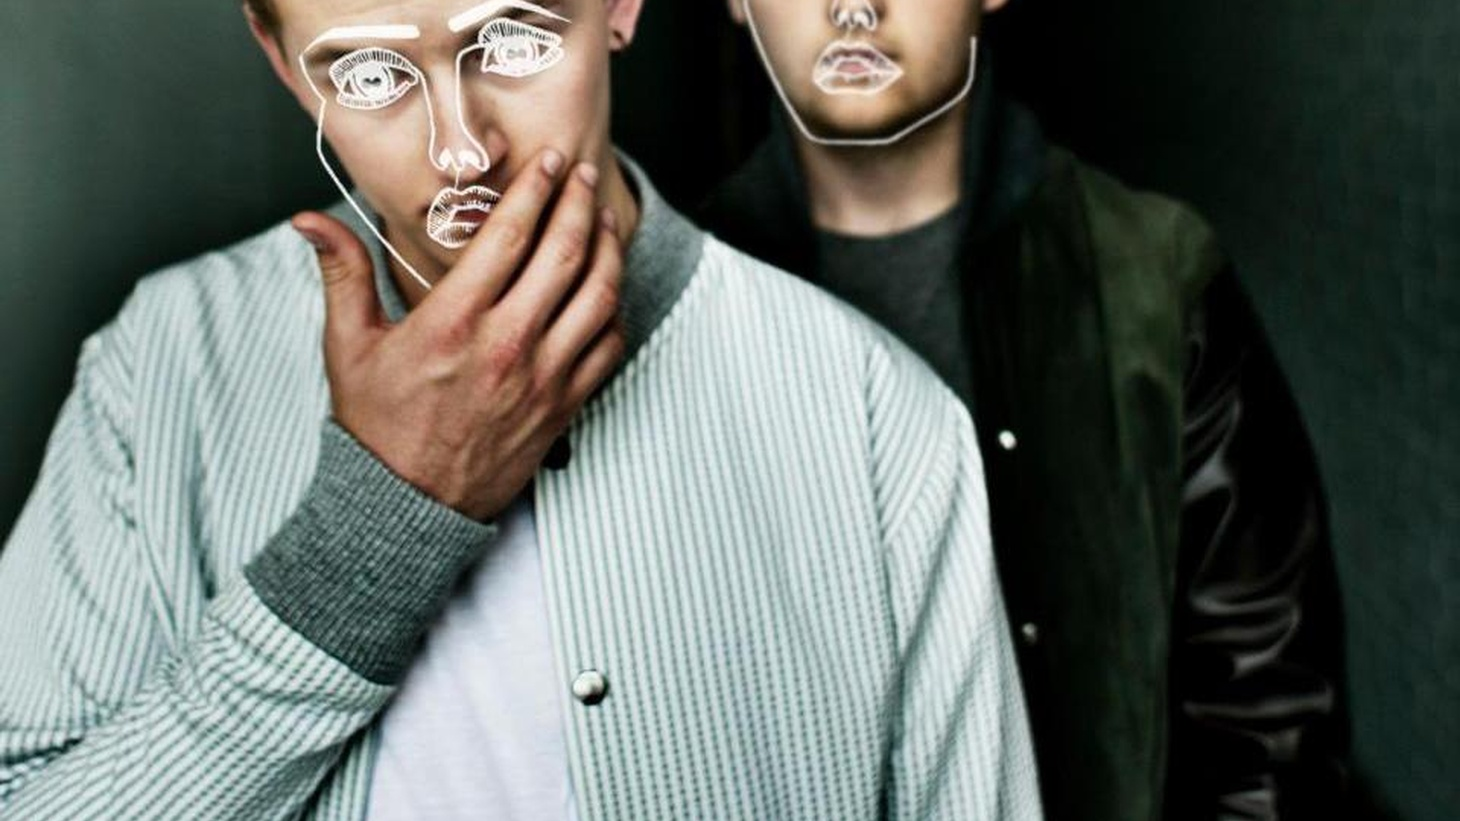 London-based sibling duo Guy and Howard Lawrence, aka Disclosure, made a special mix for the show in anticipation of their first ever LA appearance.